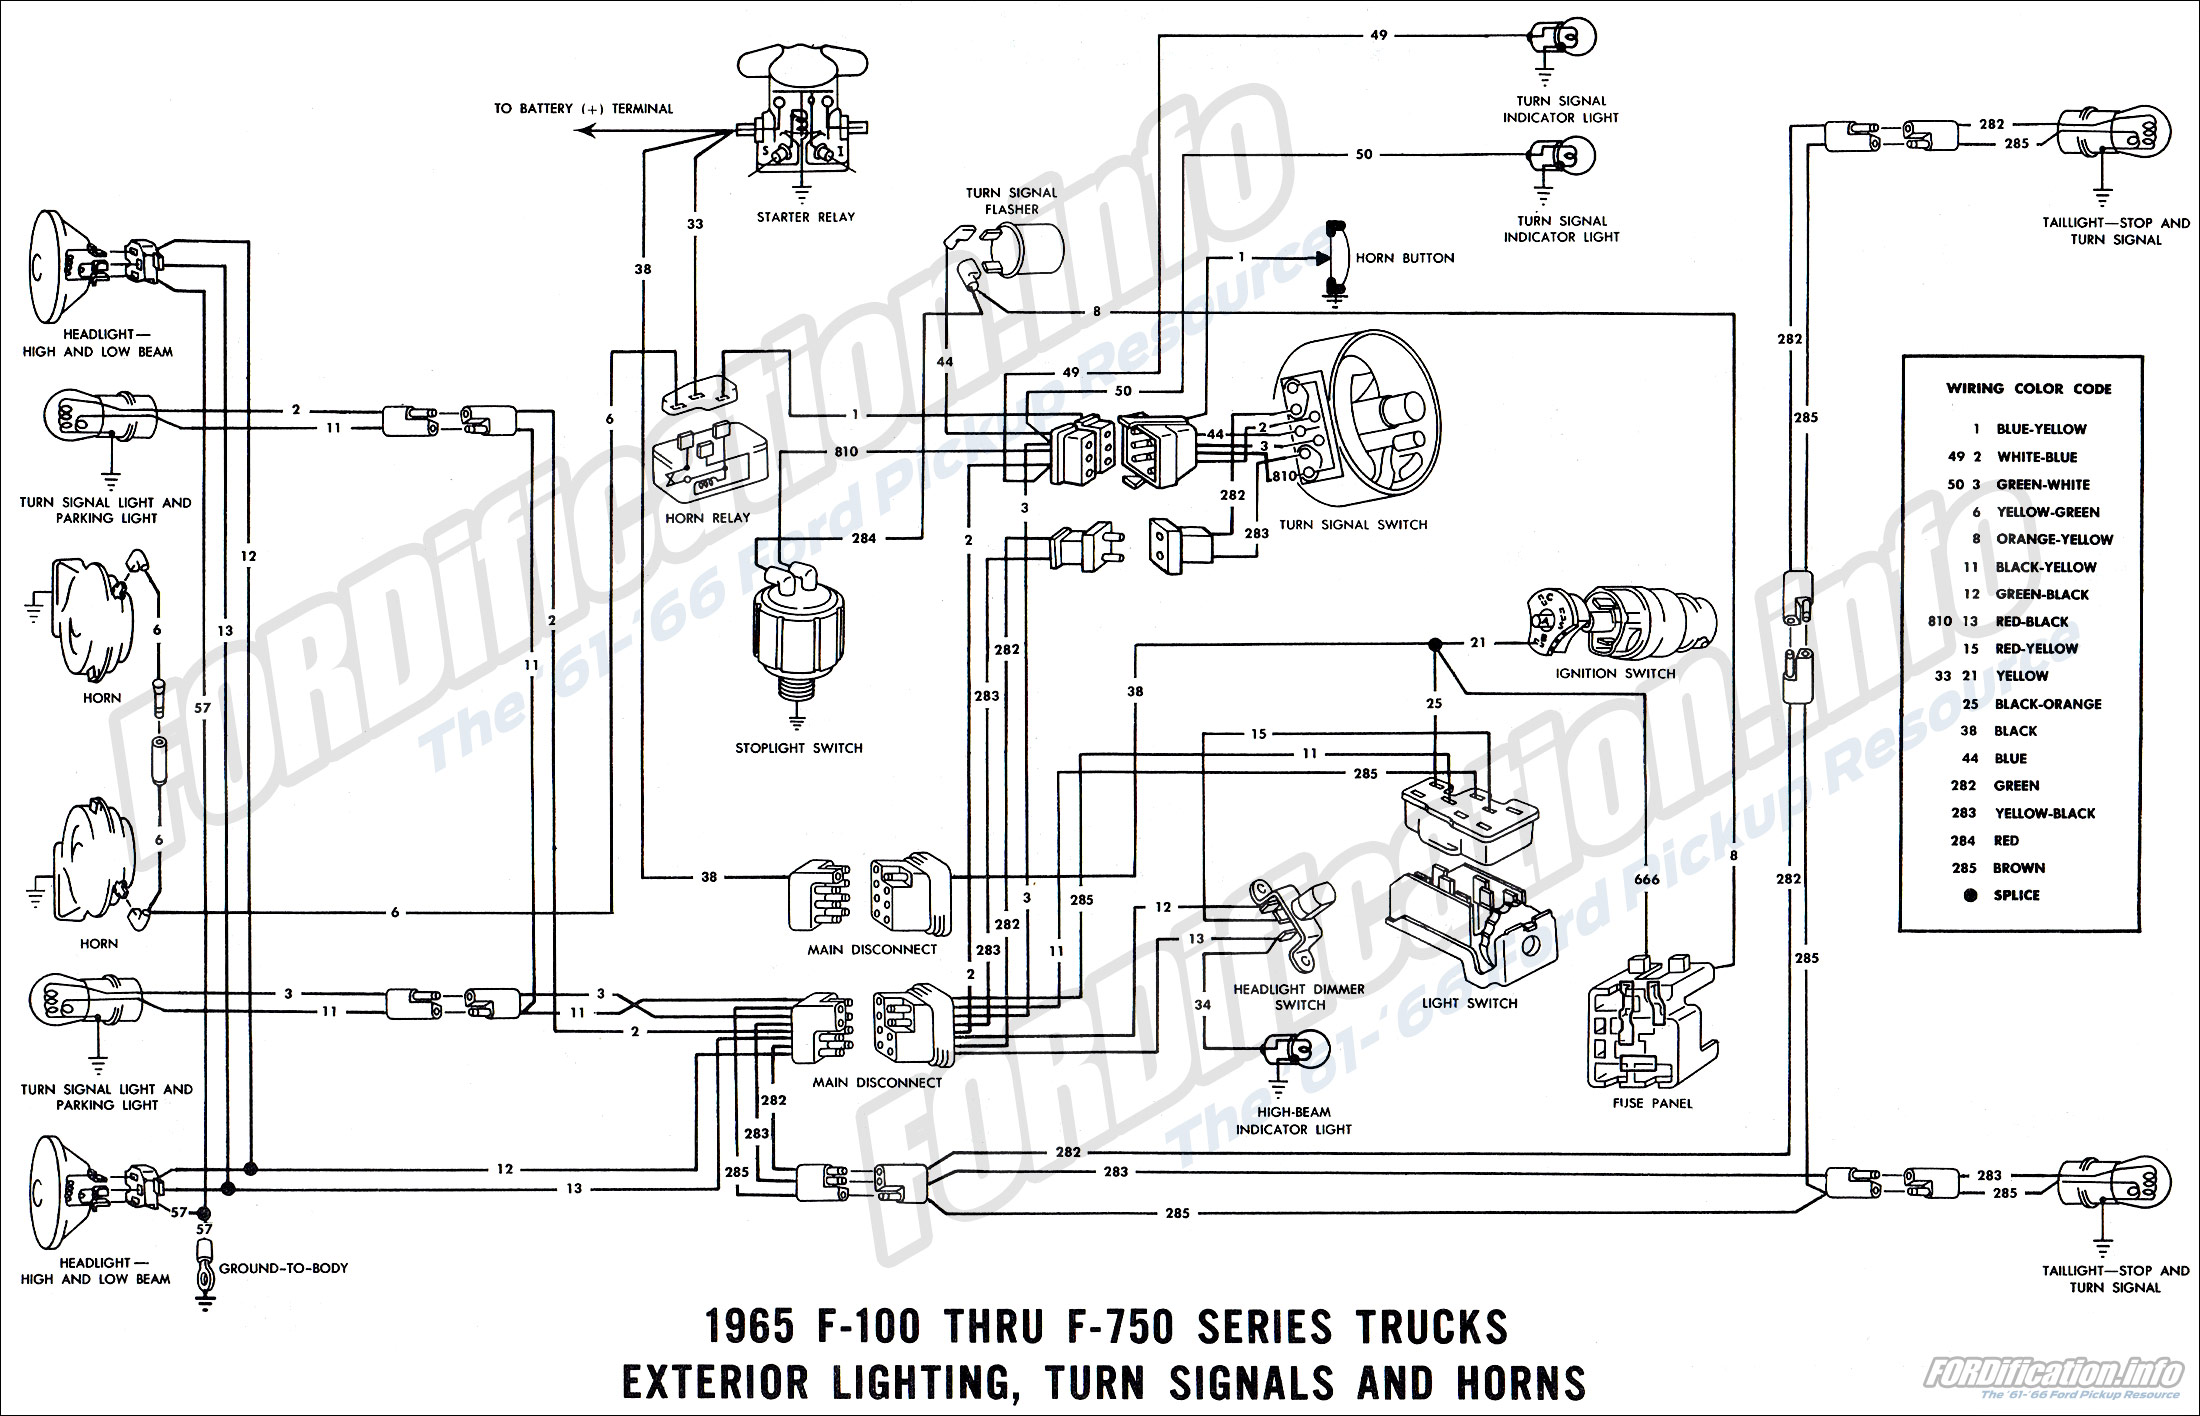 46b12t further 2017 F150 Wiring Diagram further 2006 Ford Super Duty Frame Diagram Html in addition Exploded Diagram Of Engine also 1989 F150 Fuel Pump Wiring Diagram. on ford f 250 electrical diagram